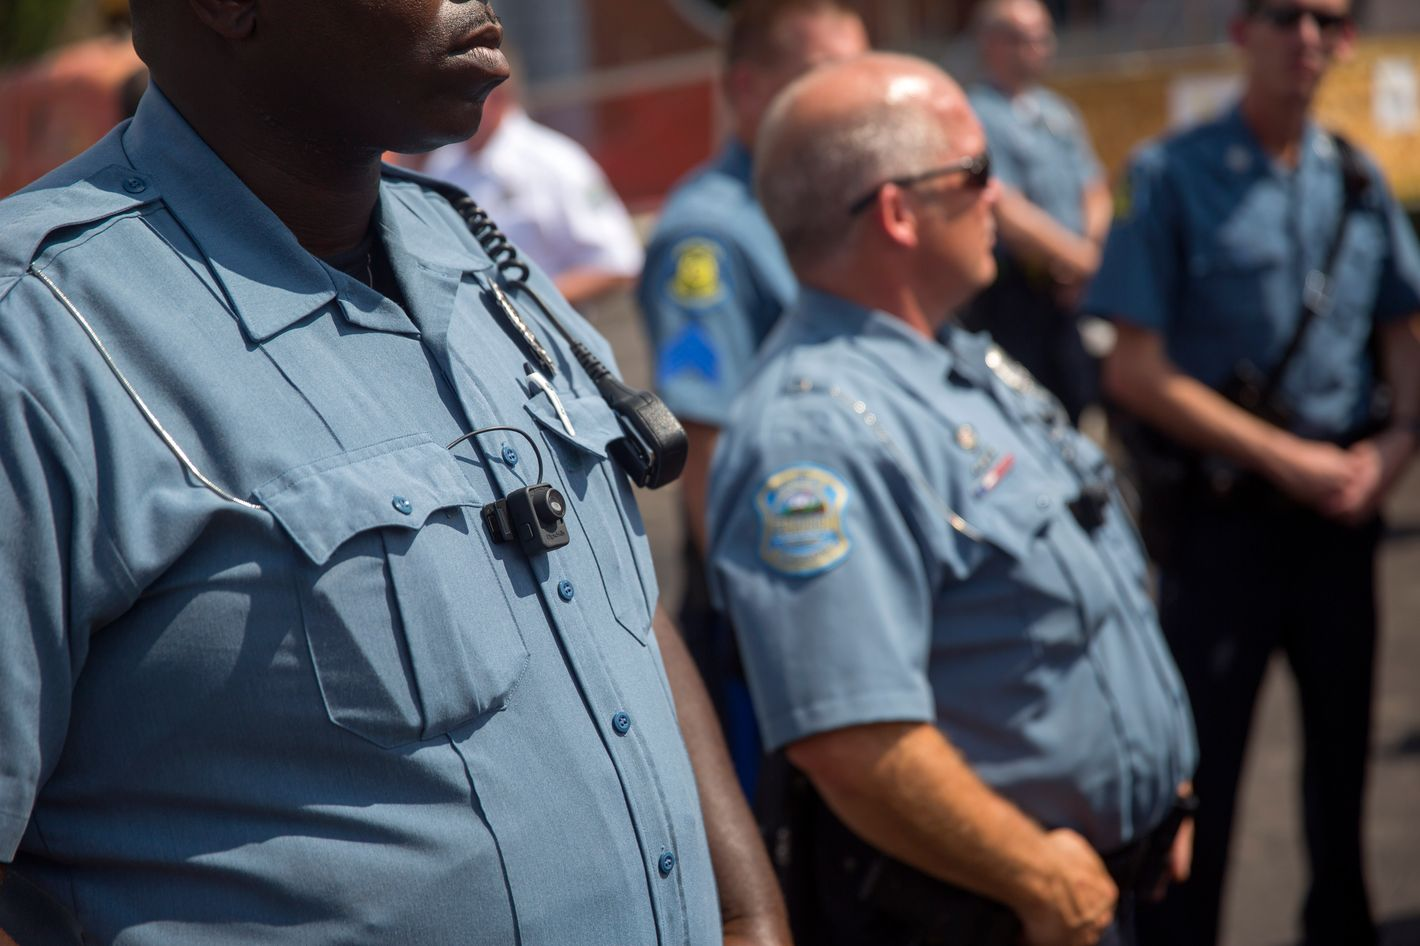 FERGUSON, MO - AUGUST 30: Members of the Ferguson Police department wear body cameras during a rally August 30, 2014 in Ferguson, Missouri.  Michael Brown, an 18-year-old unarmed teenager, was shot and killed by Ferguson Police Officer Darren Wilson on August 9. His death caused several days of violent protests along with rioting and looting in Ferguson. (Photo by Aaron P. Bernstein/Getty Images)